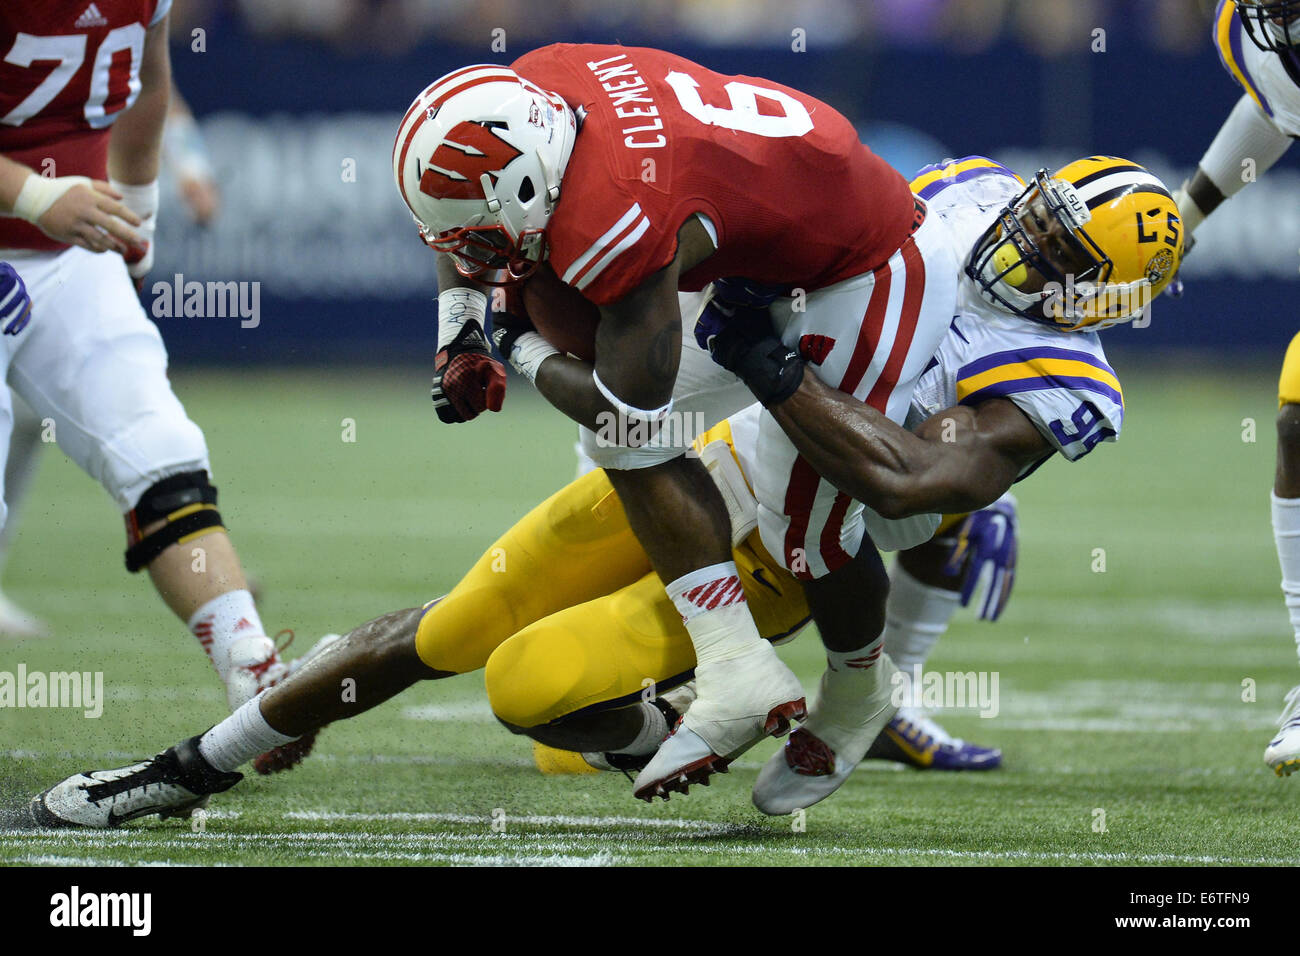 Houston, Texas, USA. 30th Aug, 2014. Wisconsin Badgers running back Corey Clement (6) is tackled by LSU Tigers defensive - Stock Image